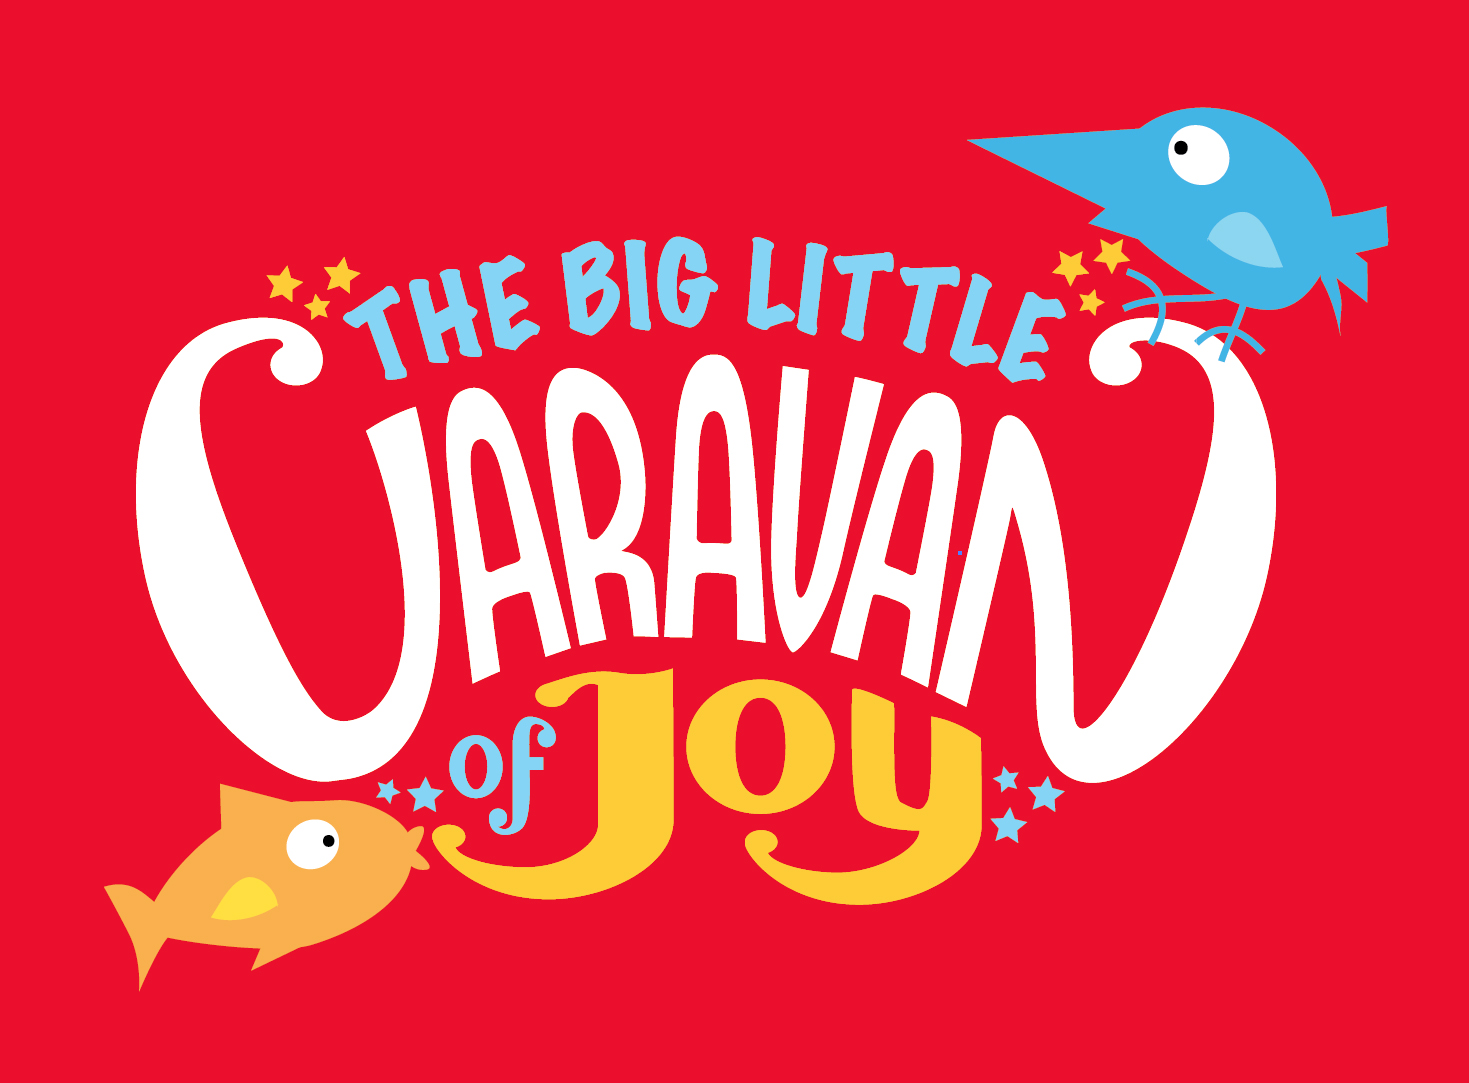 Big Little Caravan of Joy